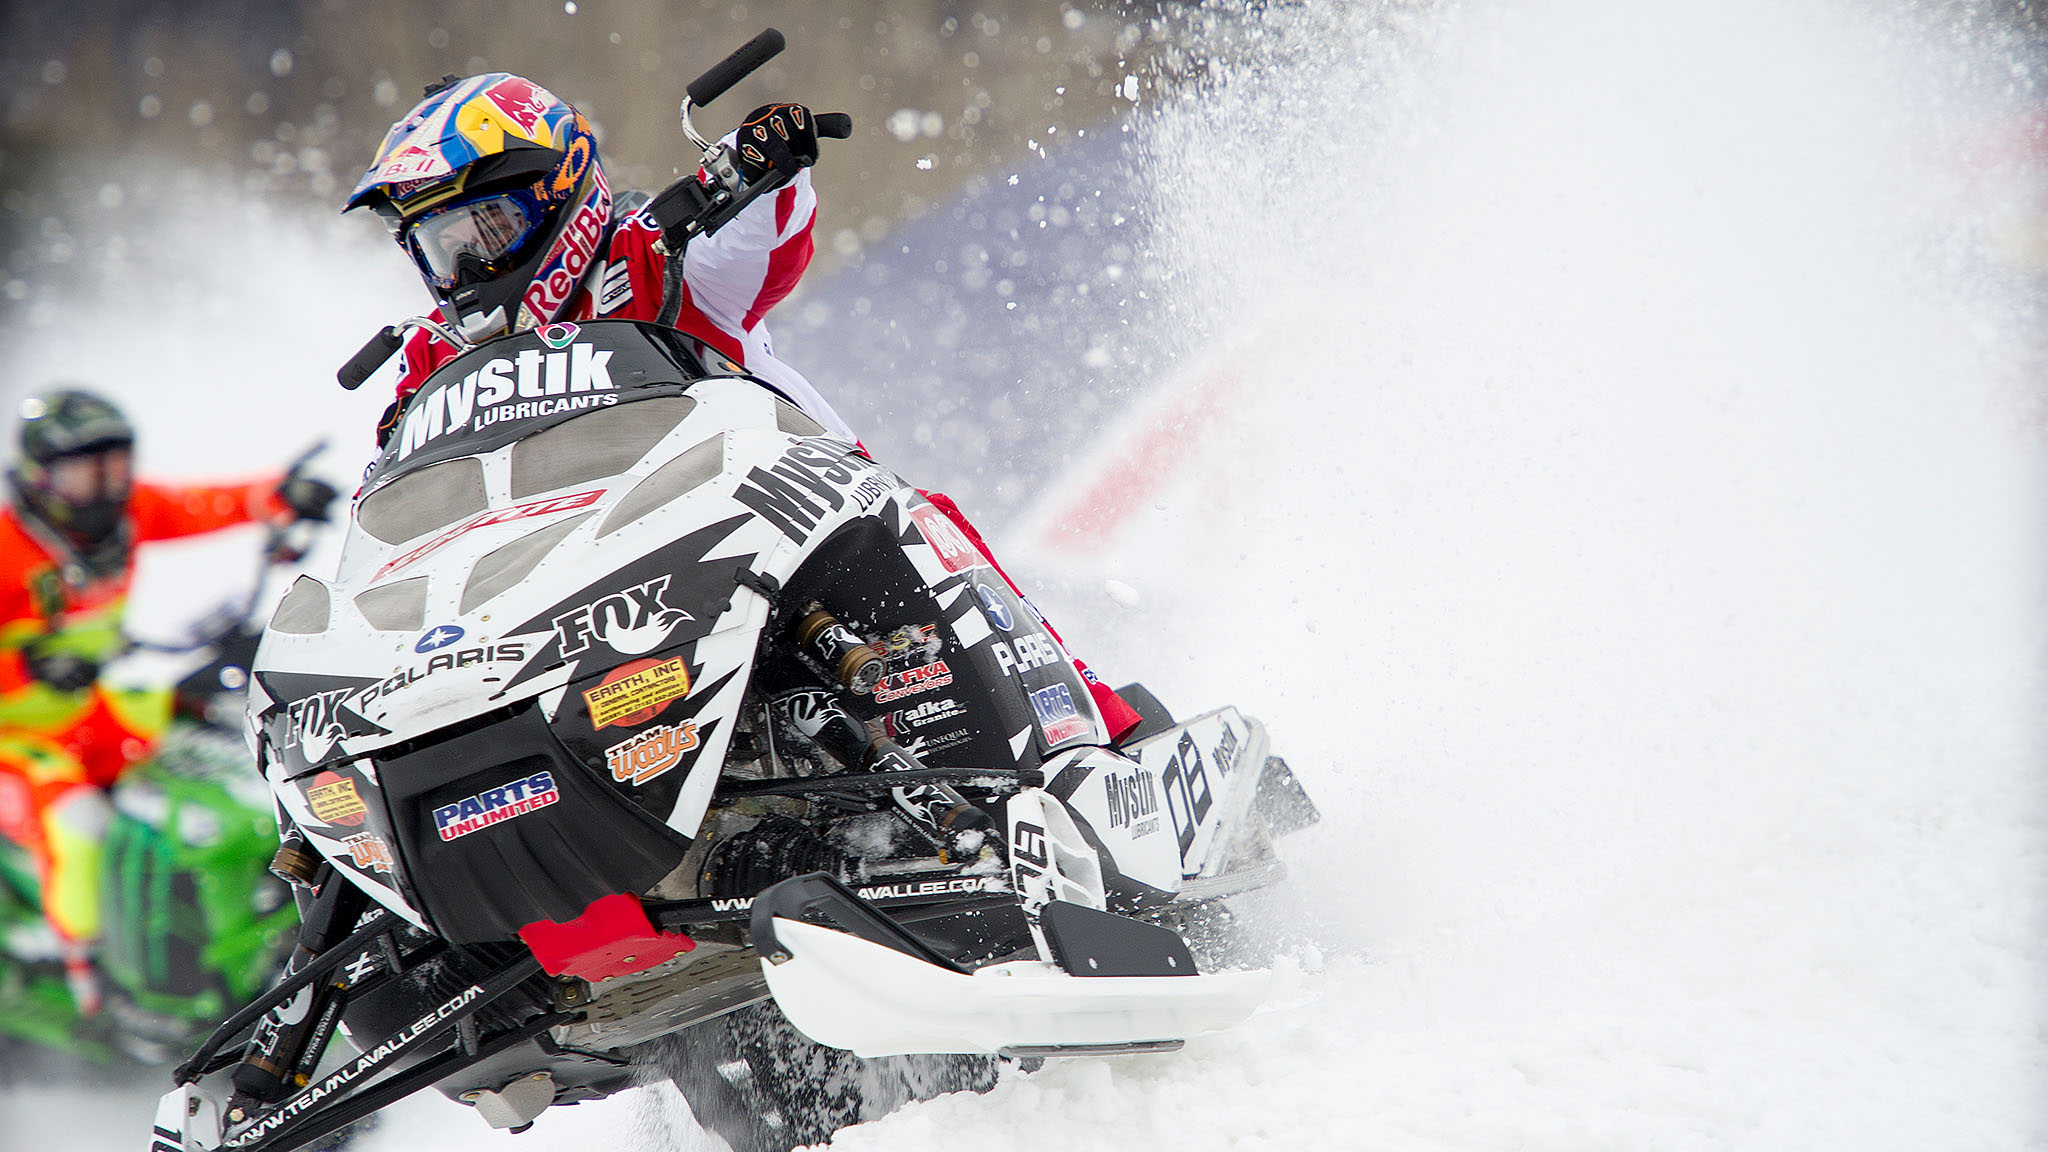 Levi LaVallee added to his gold medal collection, winning the Snowmobile Speed & Style final.